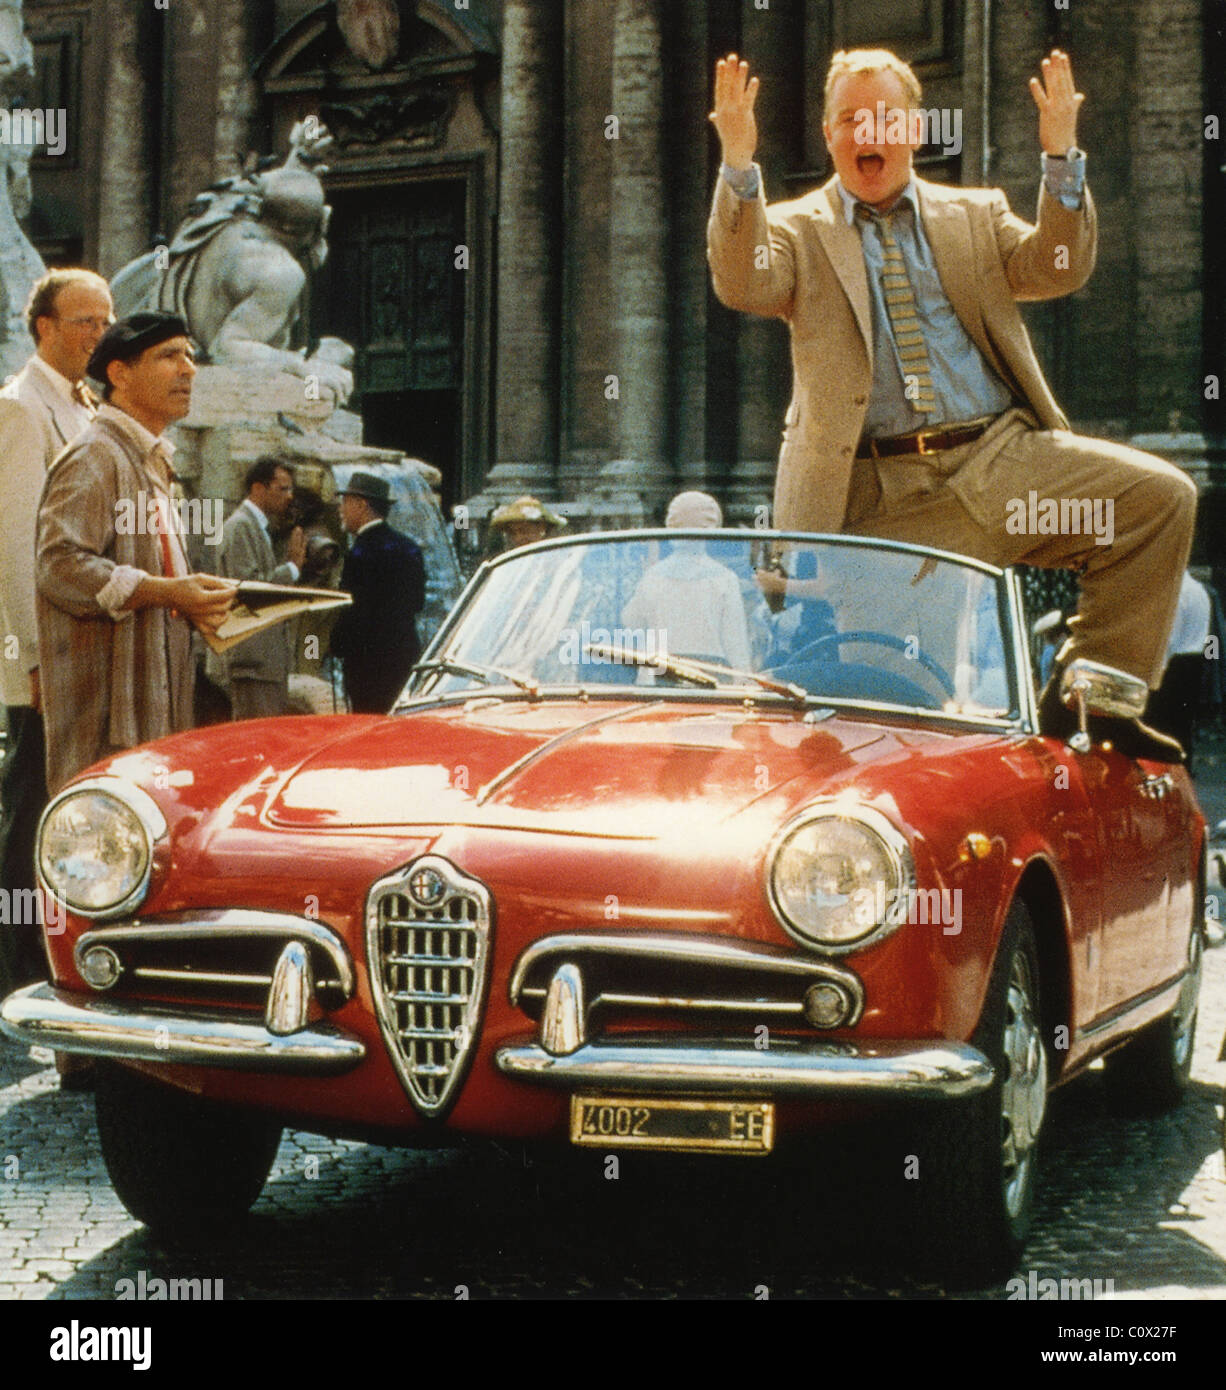 the talented mr ripley 1999 paramount film featuring a 1955 alfa